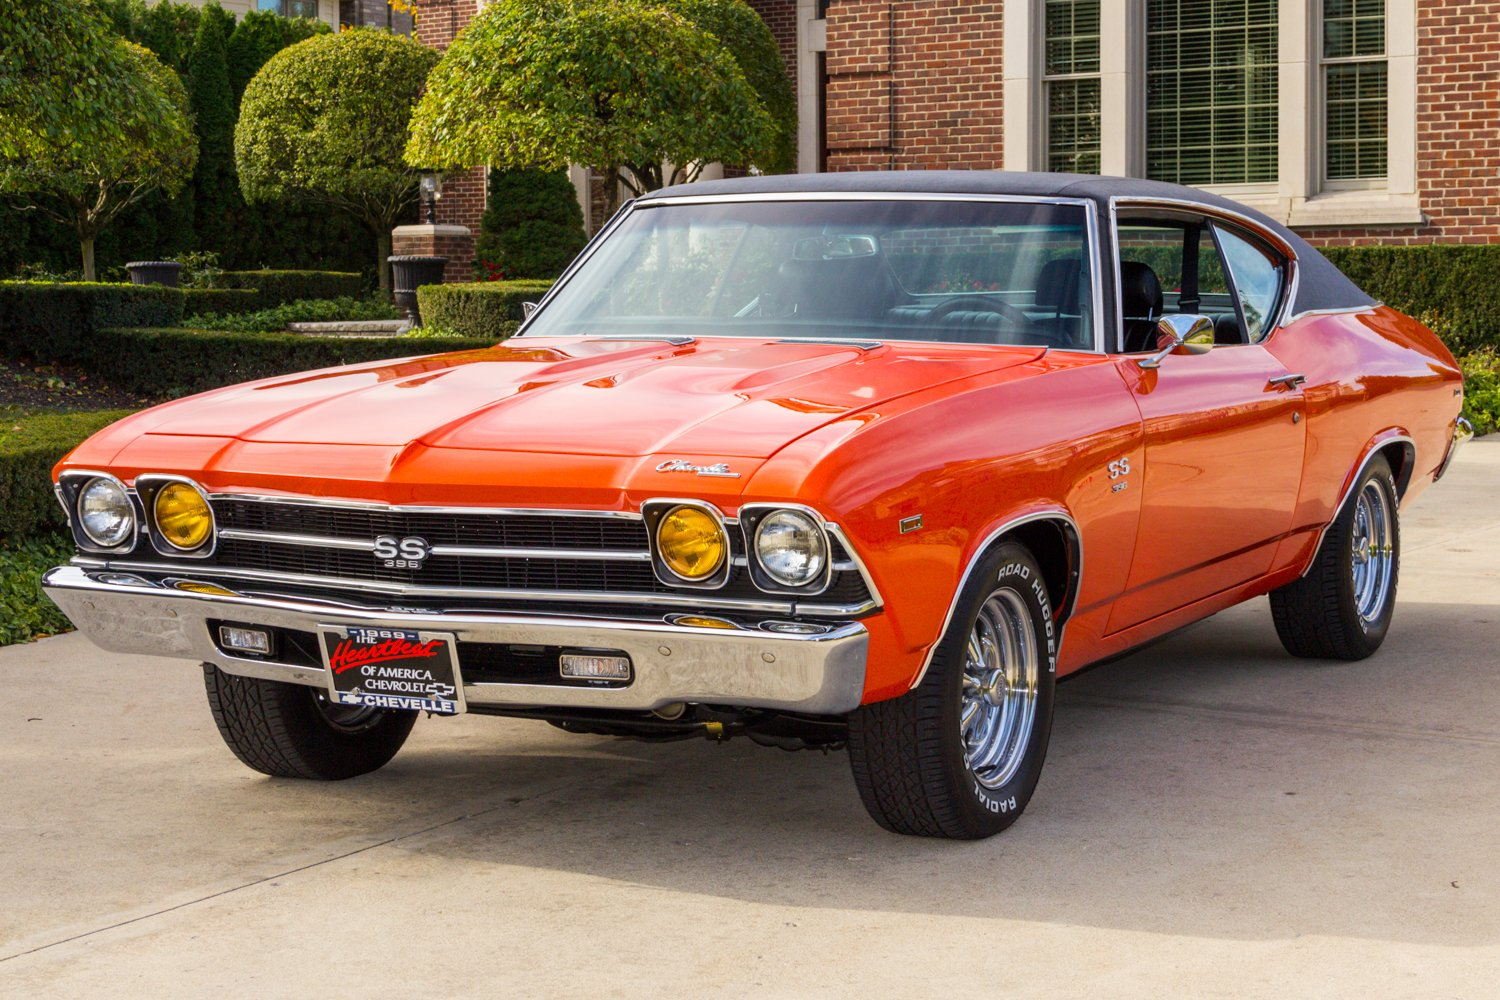 hight resolution of  1969 chevrolet chevelle clic cars for sale michigan muscle on wiring 69 chevelle wiring diagram for a console